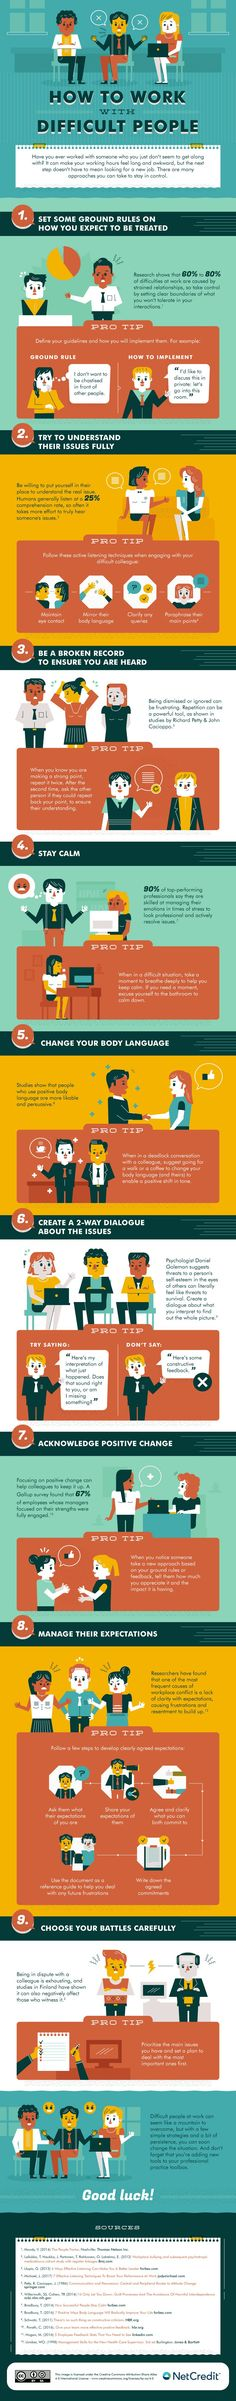 9 Ways to Work With Difficult People (Infographic)